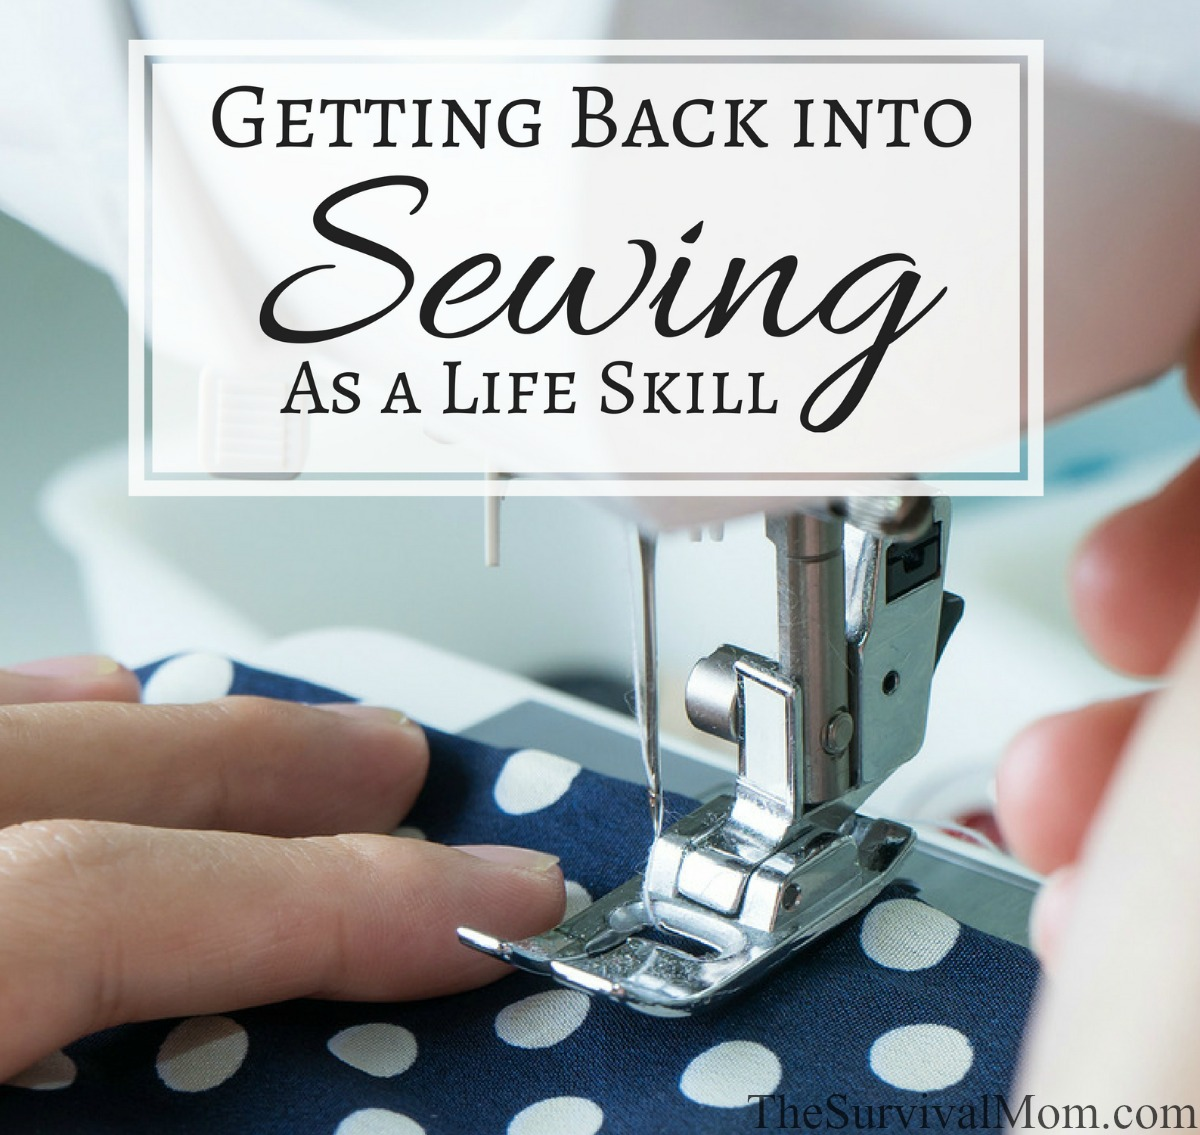 Getting Back into Sewing As a Life Skill via The Survival Mom